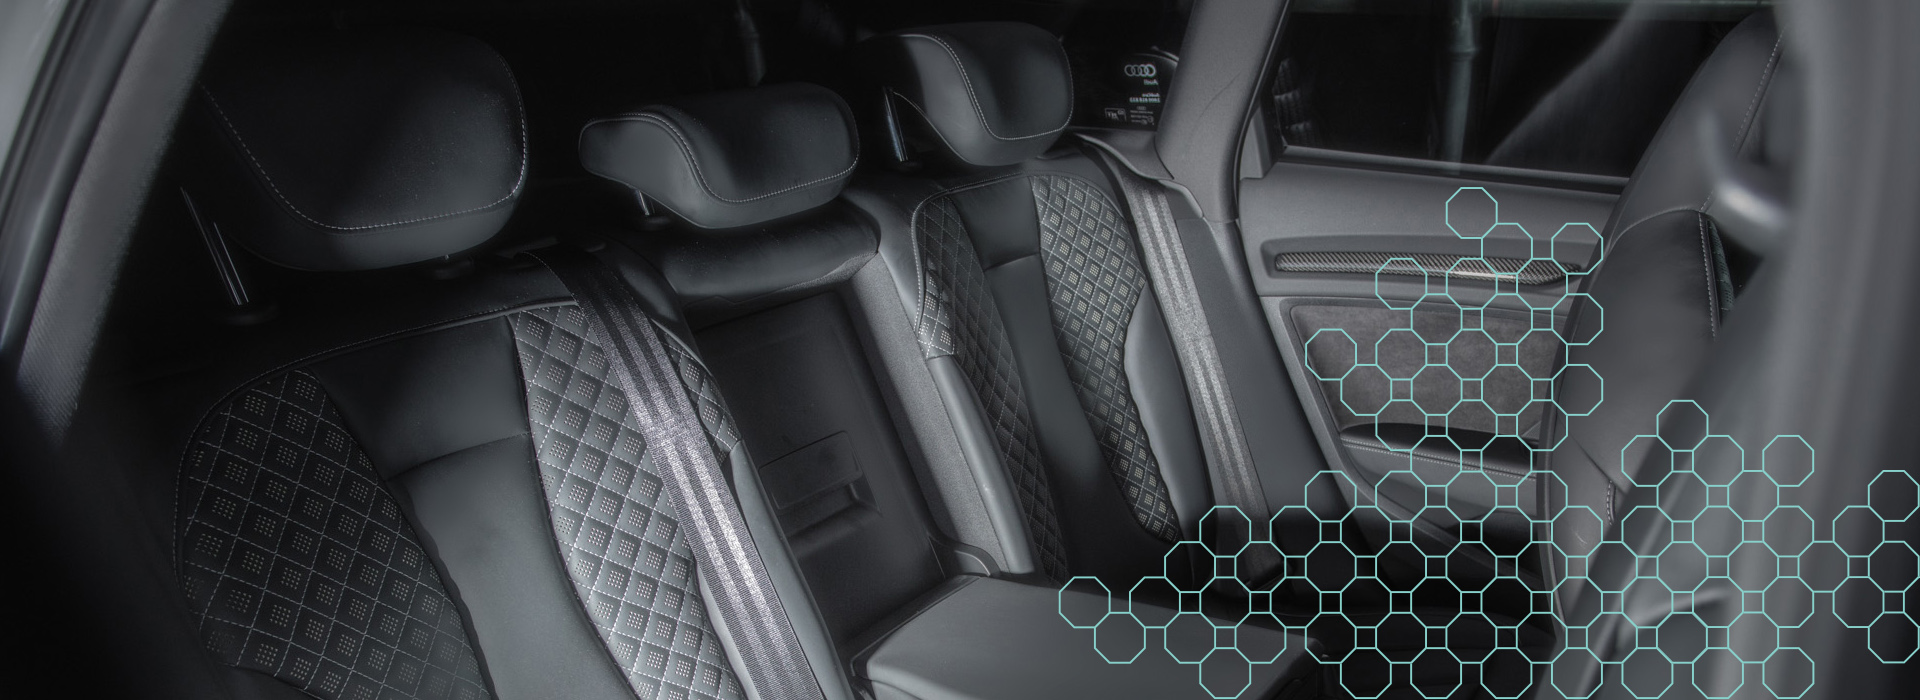 INTERIOR PROTECTION AHEAD OF THE GAME Image